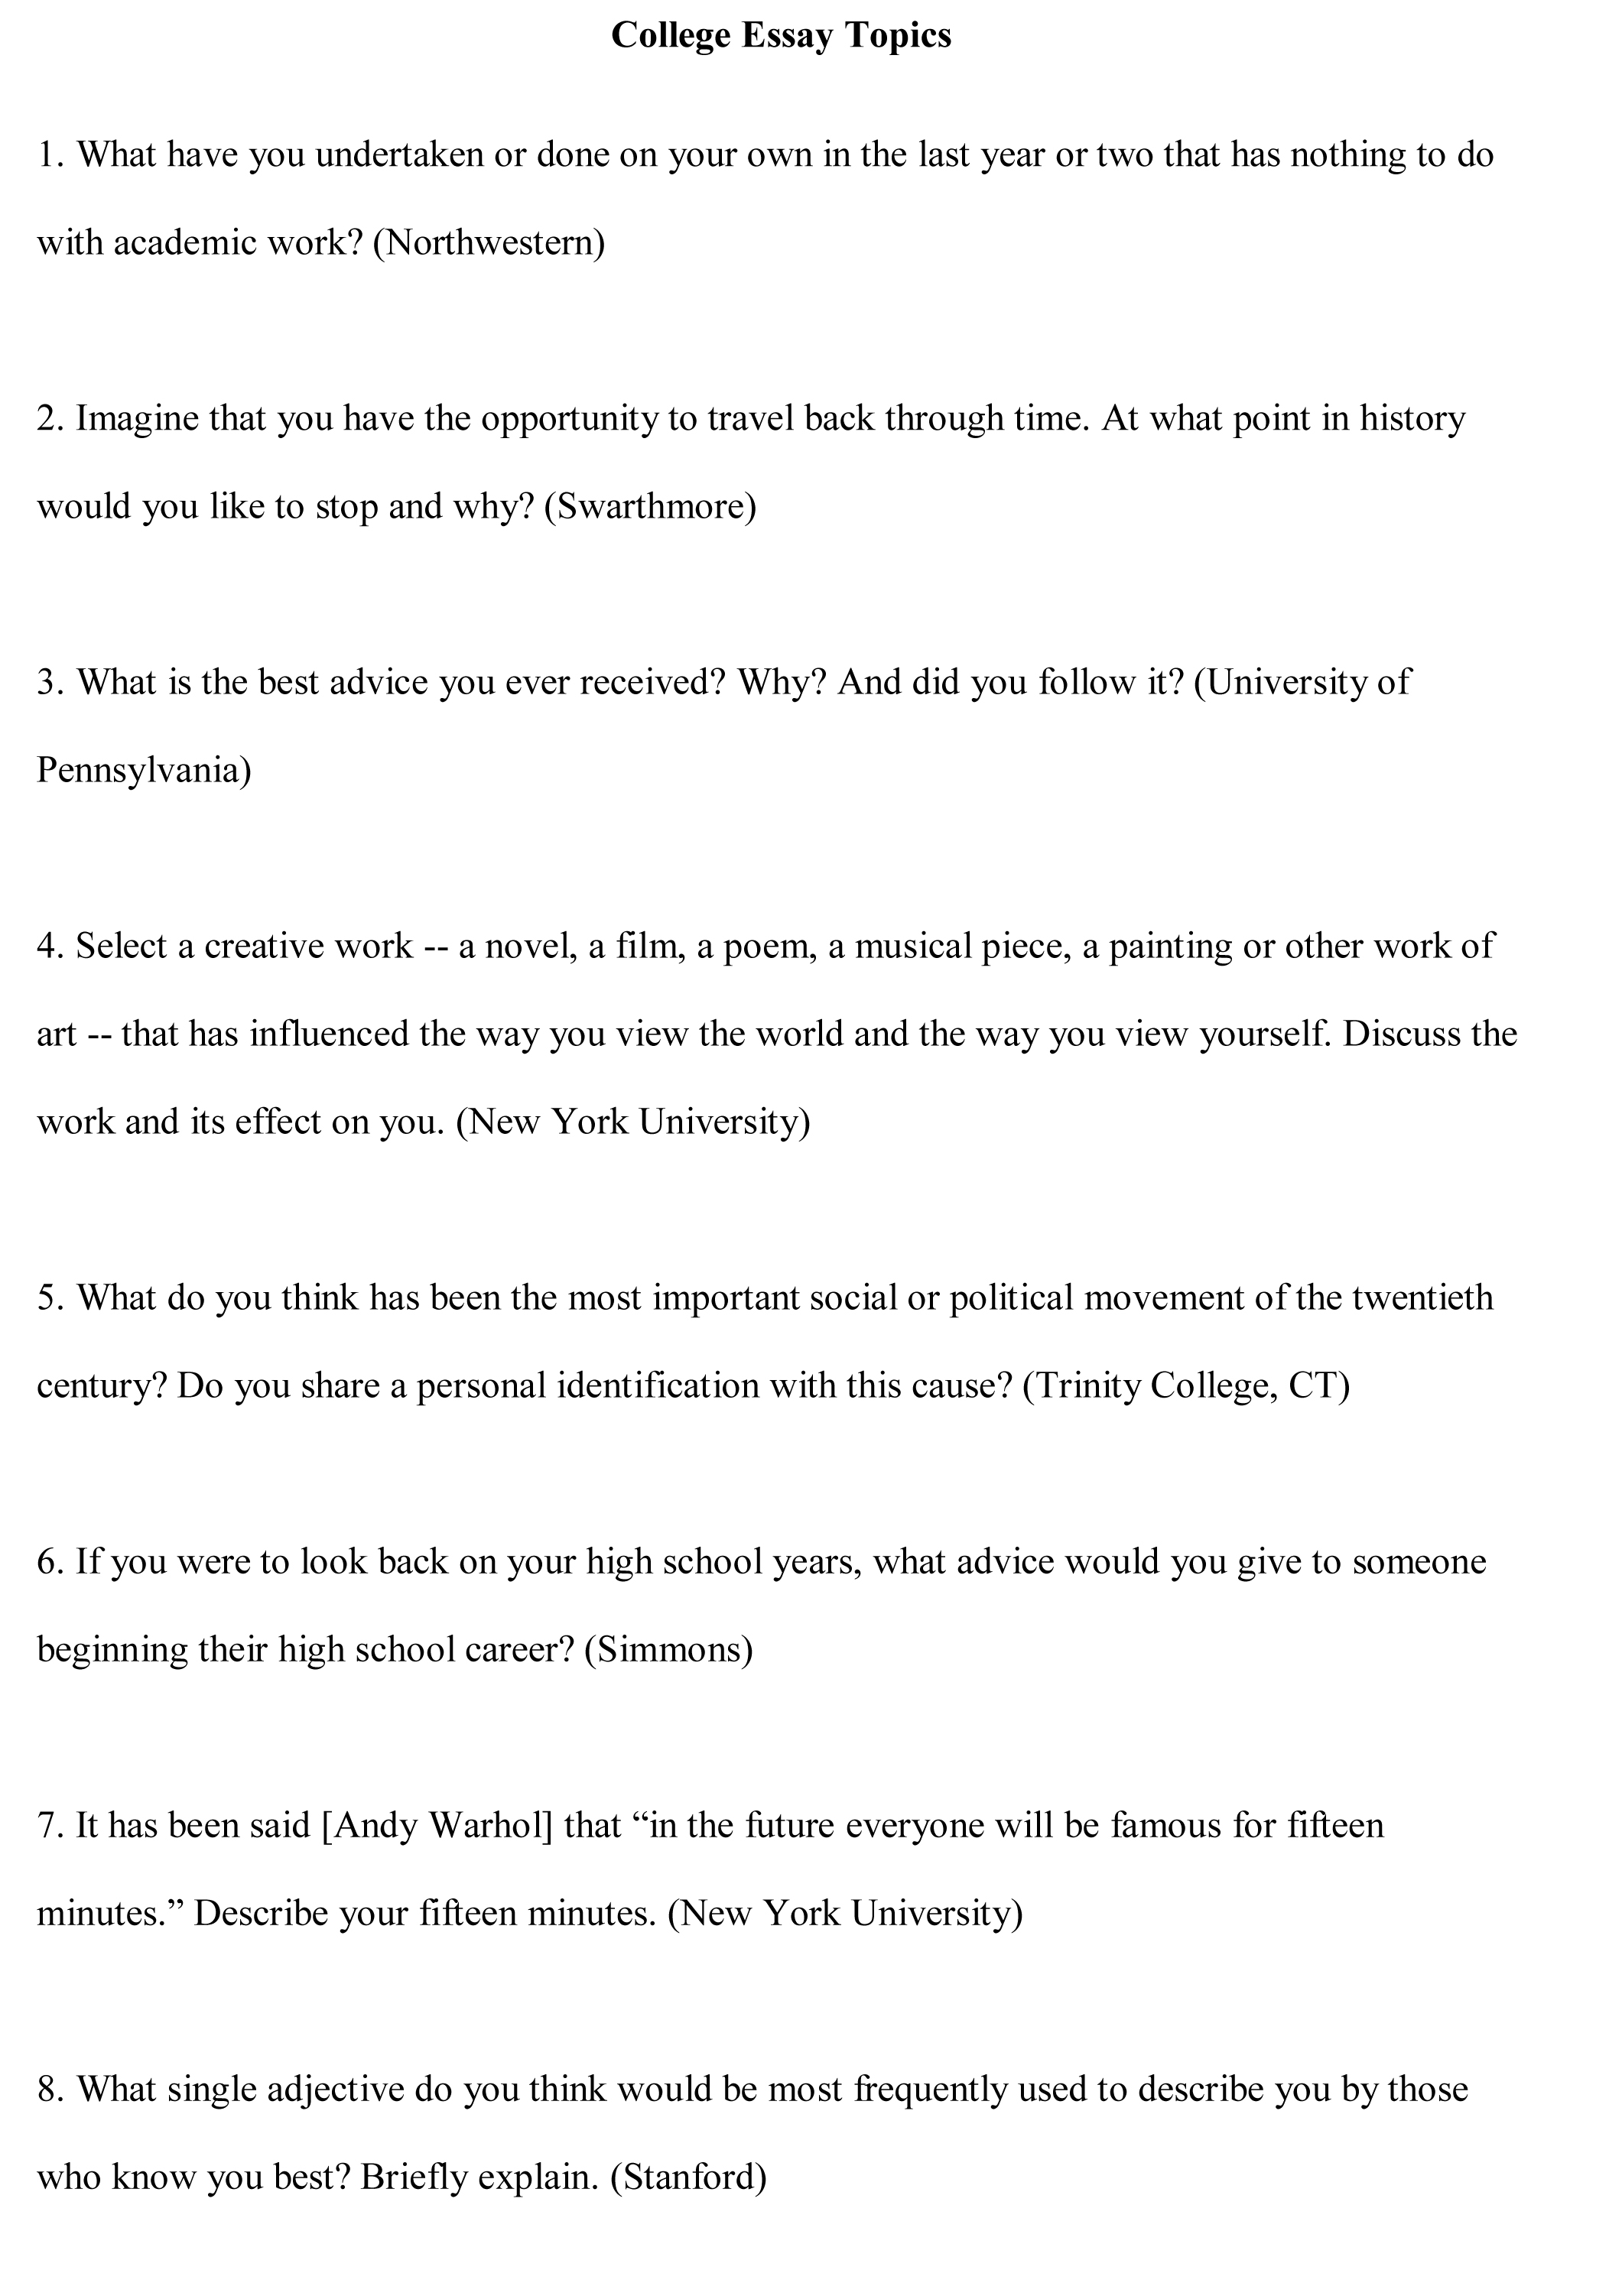 023 Free Essay Generator College Topics Sample1 Impressive Reddit No Sign Up Full